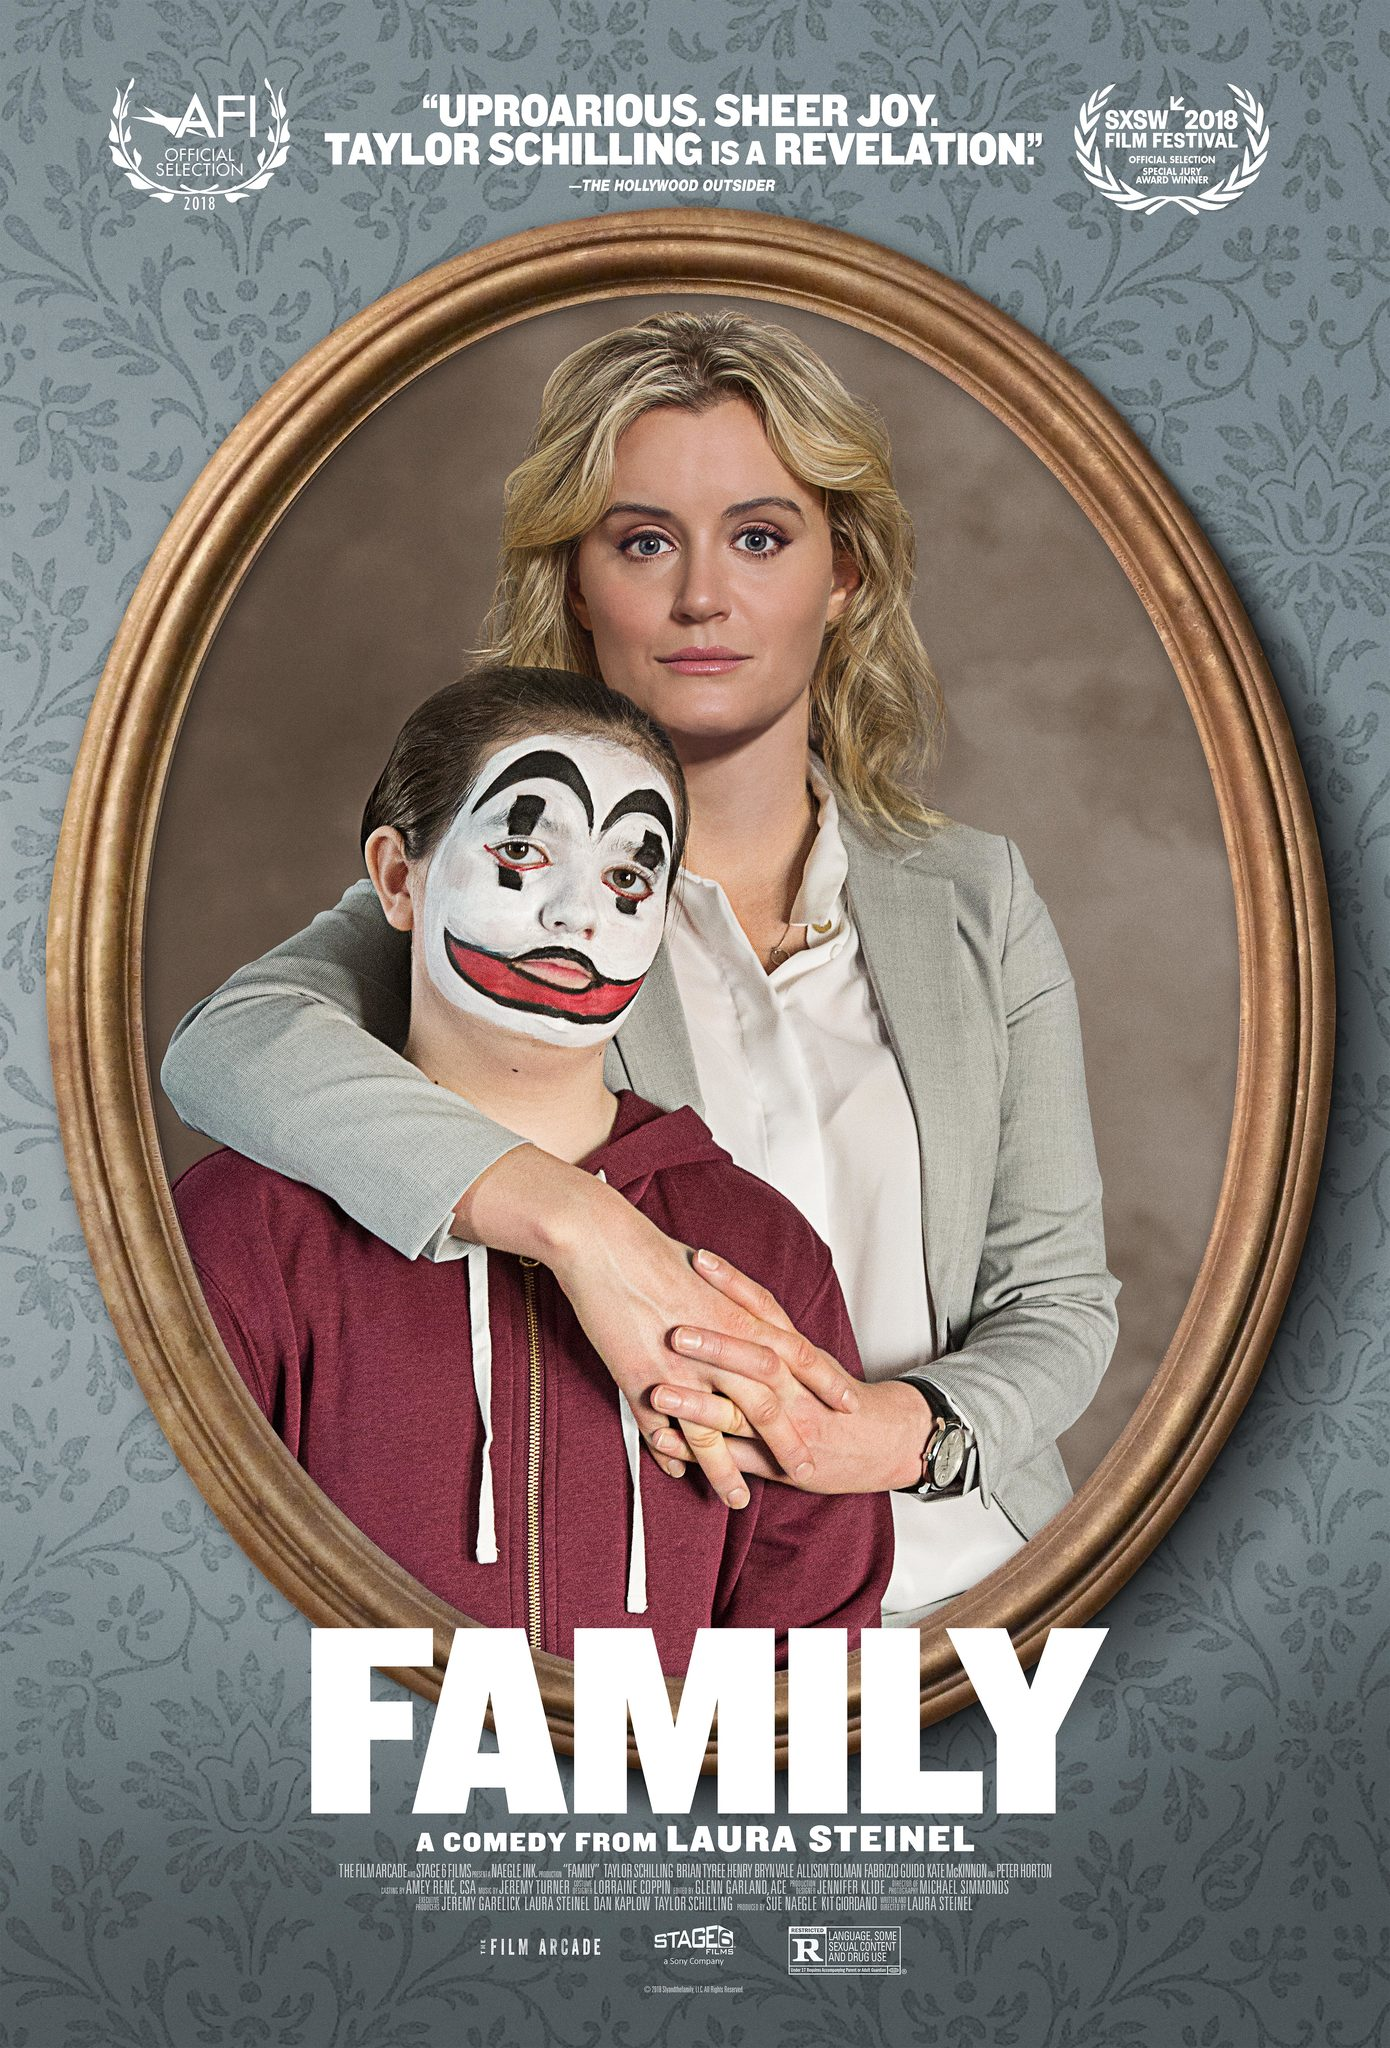 Image result for family taylor schilling movie poster